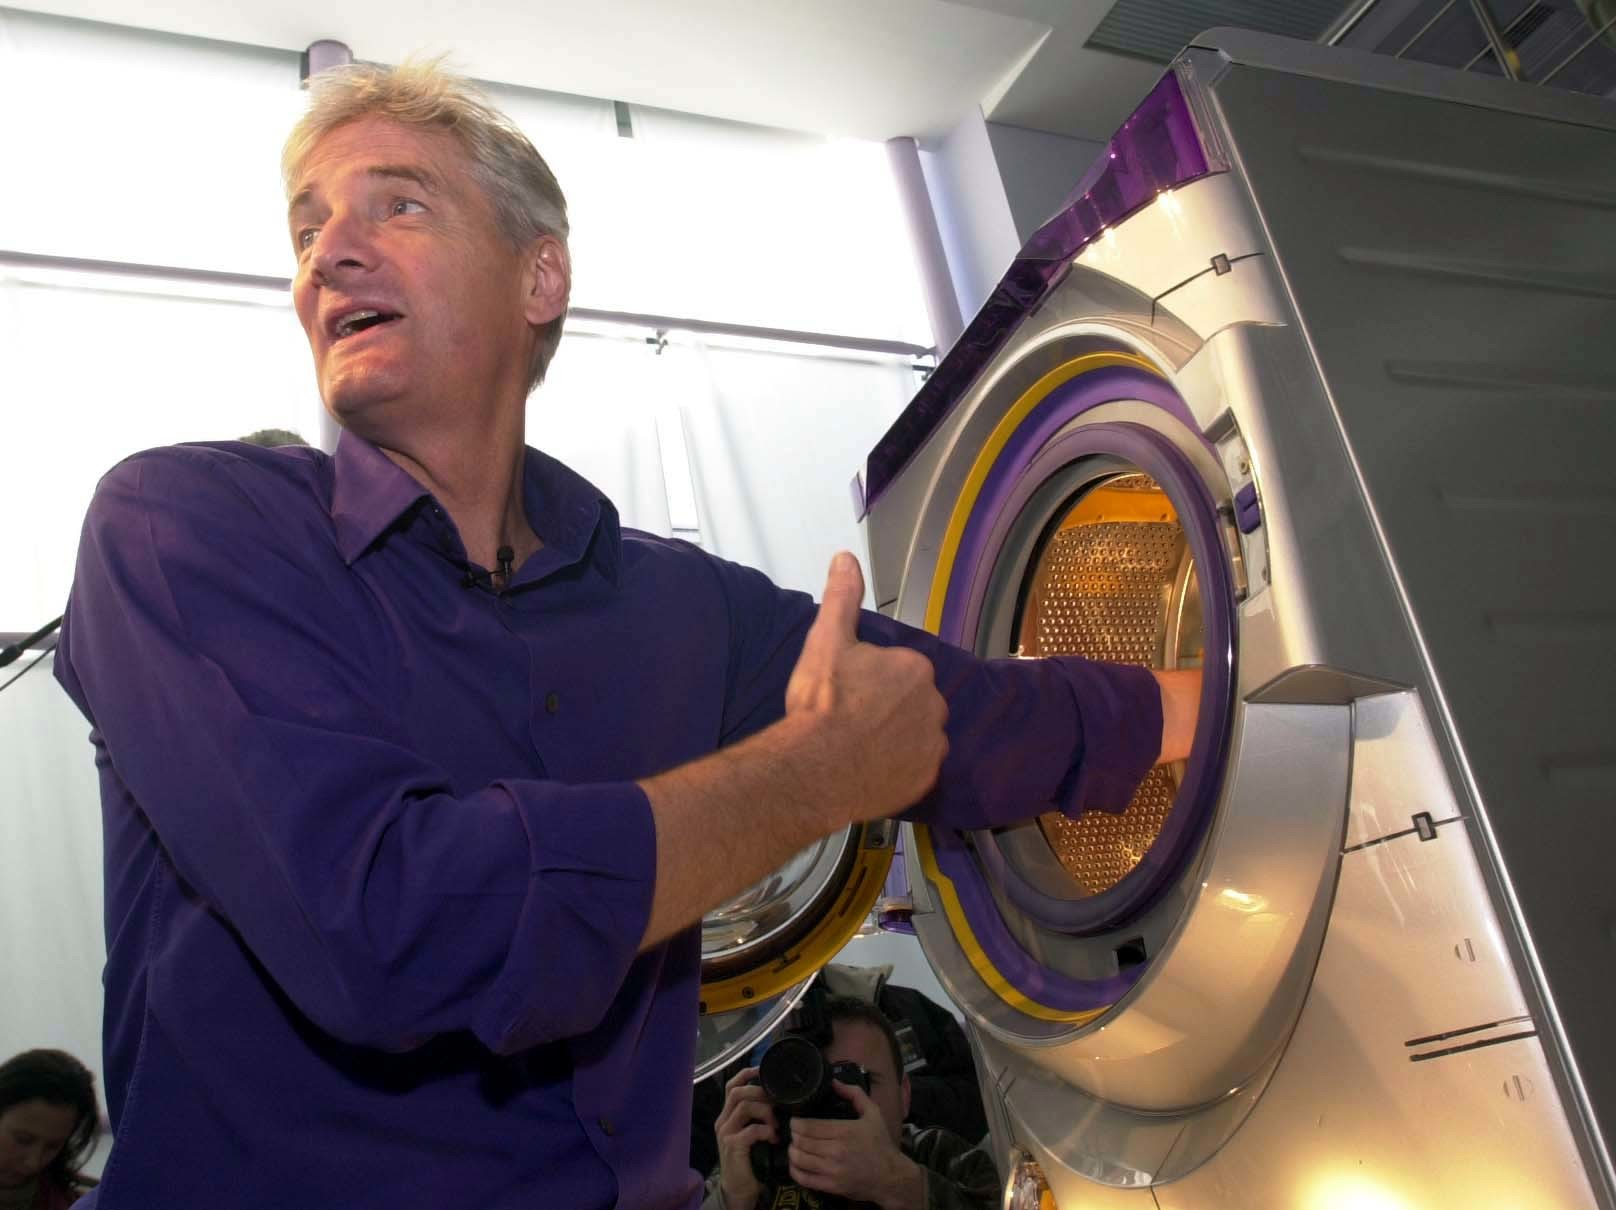 Inventor James Dyson with his new Dyson Contrarotator washing machine which he launched at his Wiltshire headquarters.